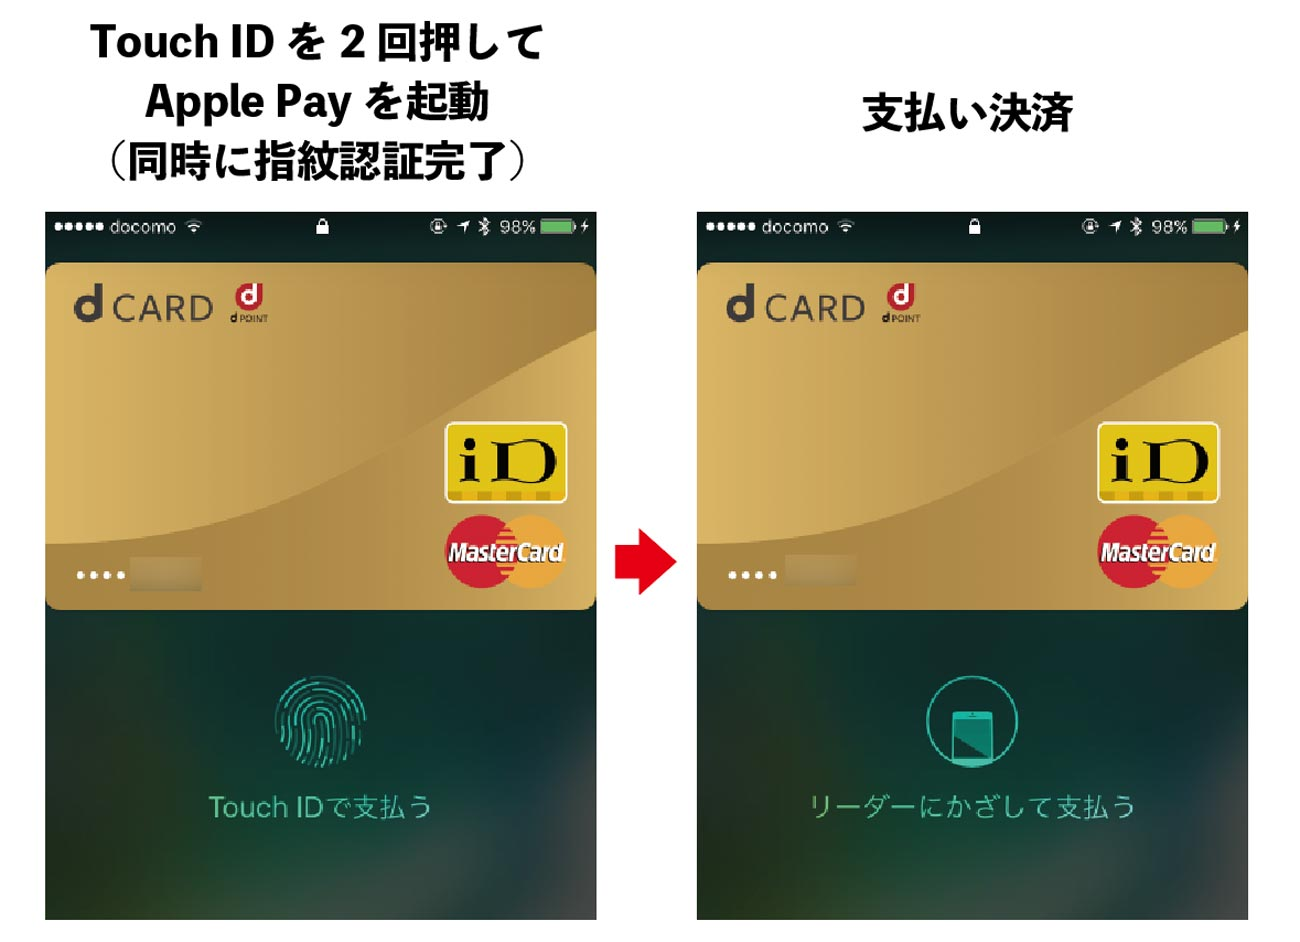 Touch IDとApple Pay 手順